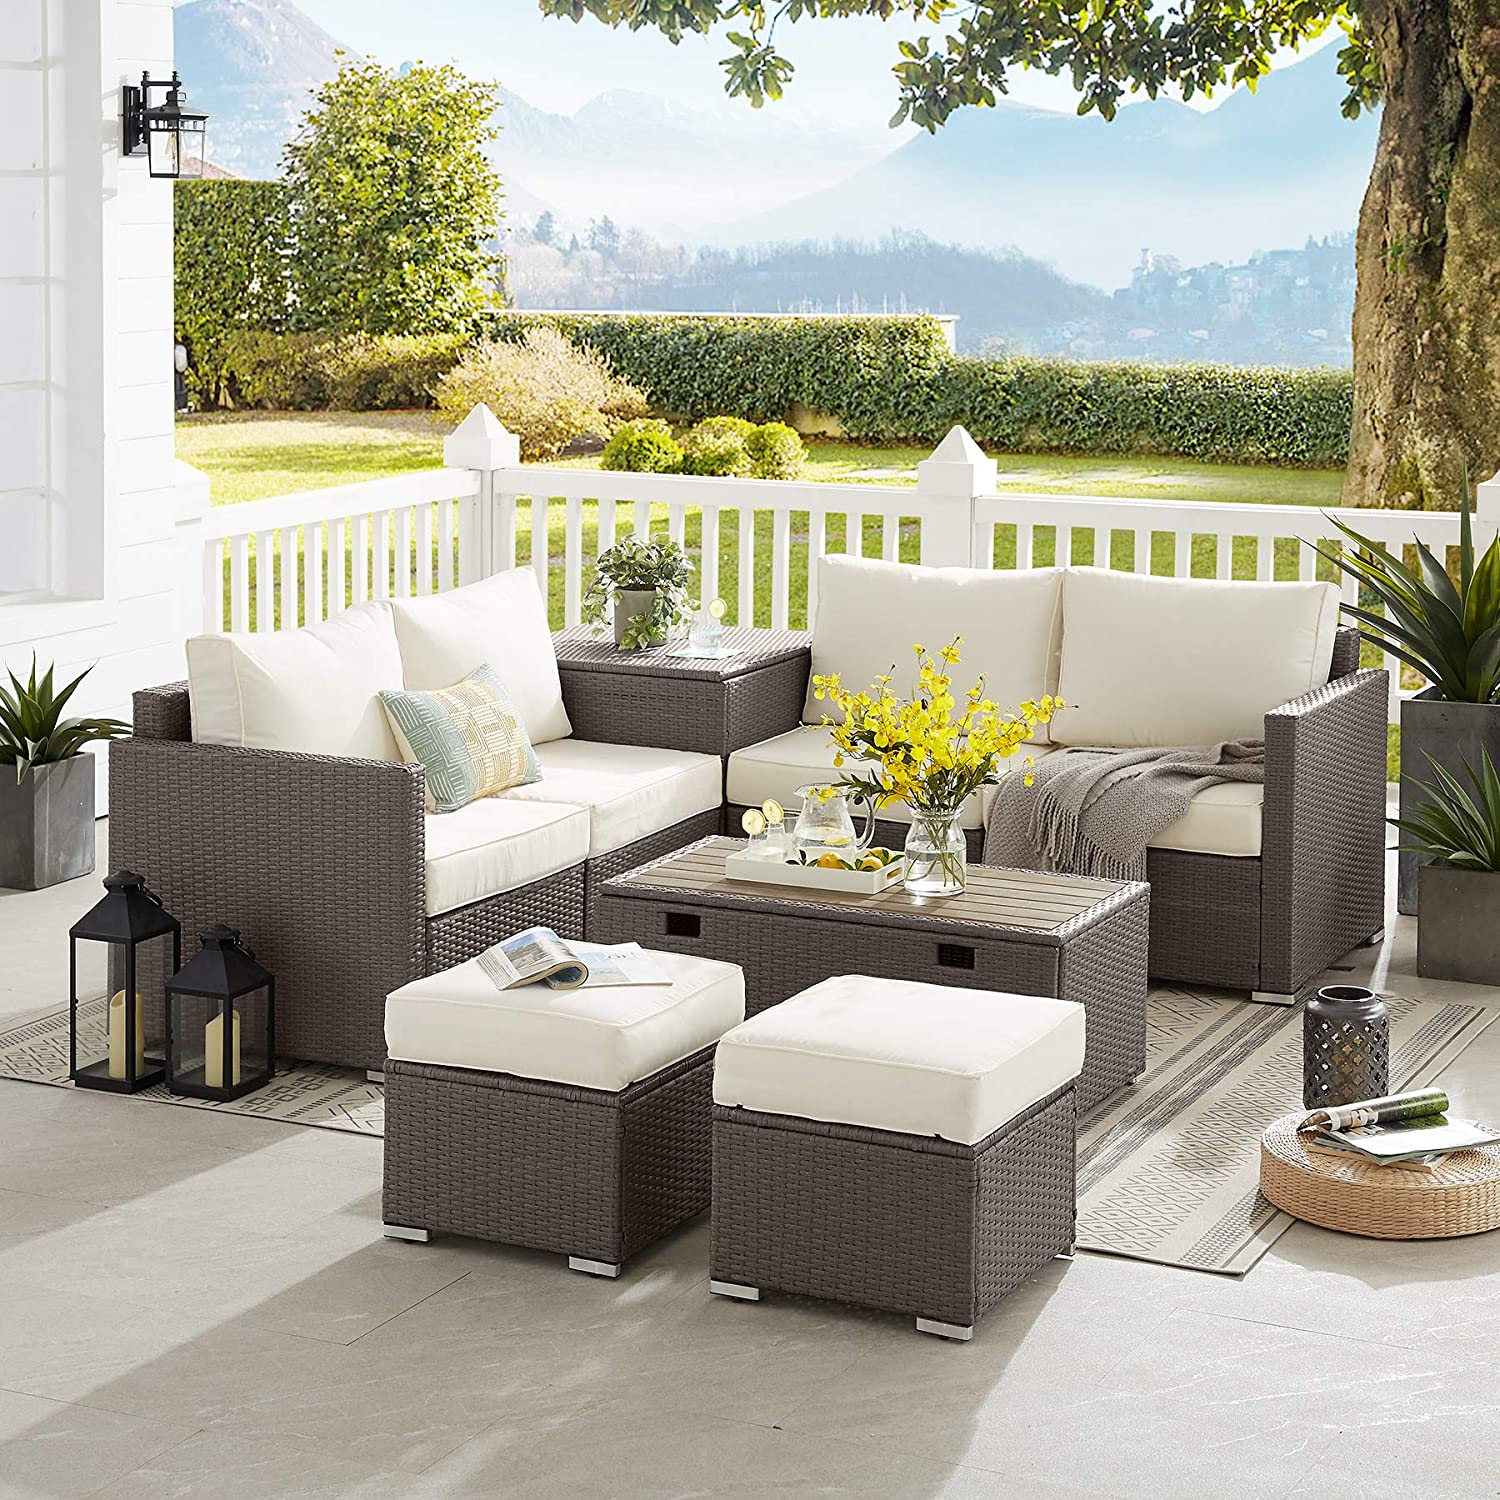 Tribesigns 8 Pieces Patio Furniture Set with 2 Storage Tables & Soft Cushions, Extra Large Outdoor Sectional Sofa, Wicker Rattan Couch Conversation Set for Garden, Porch, Backyard, BN-Beige